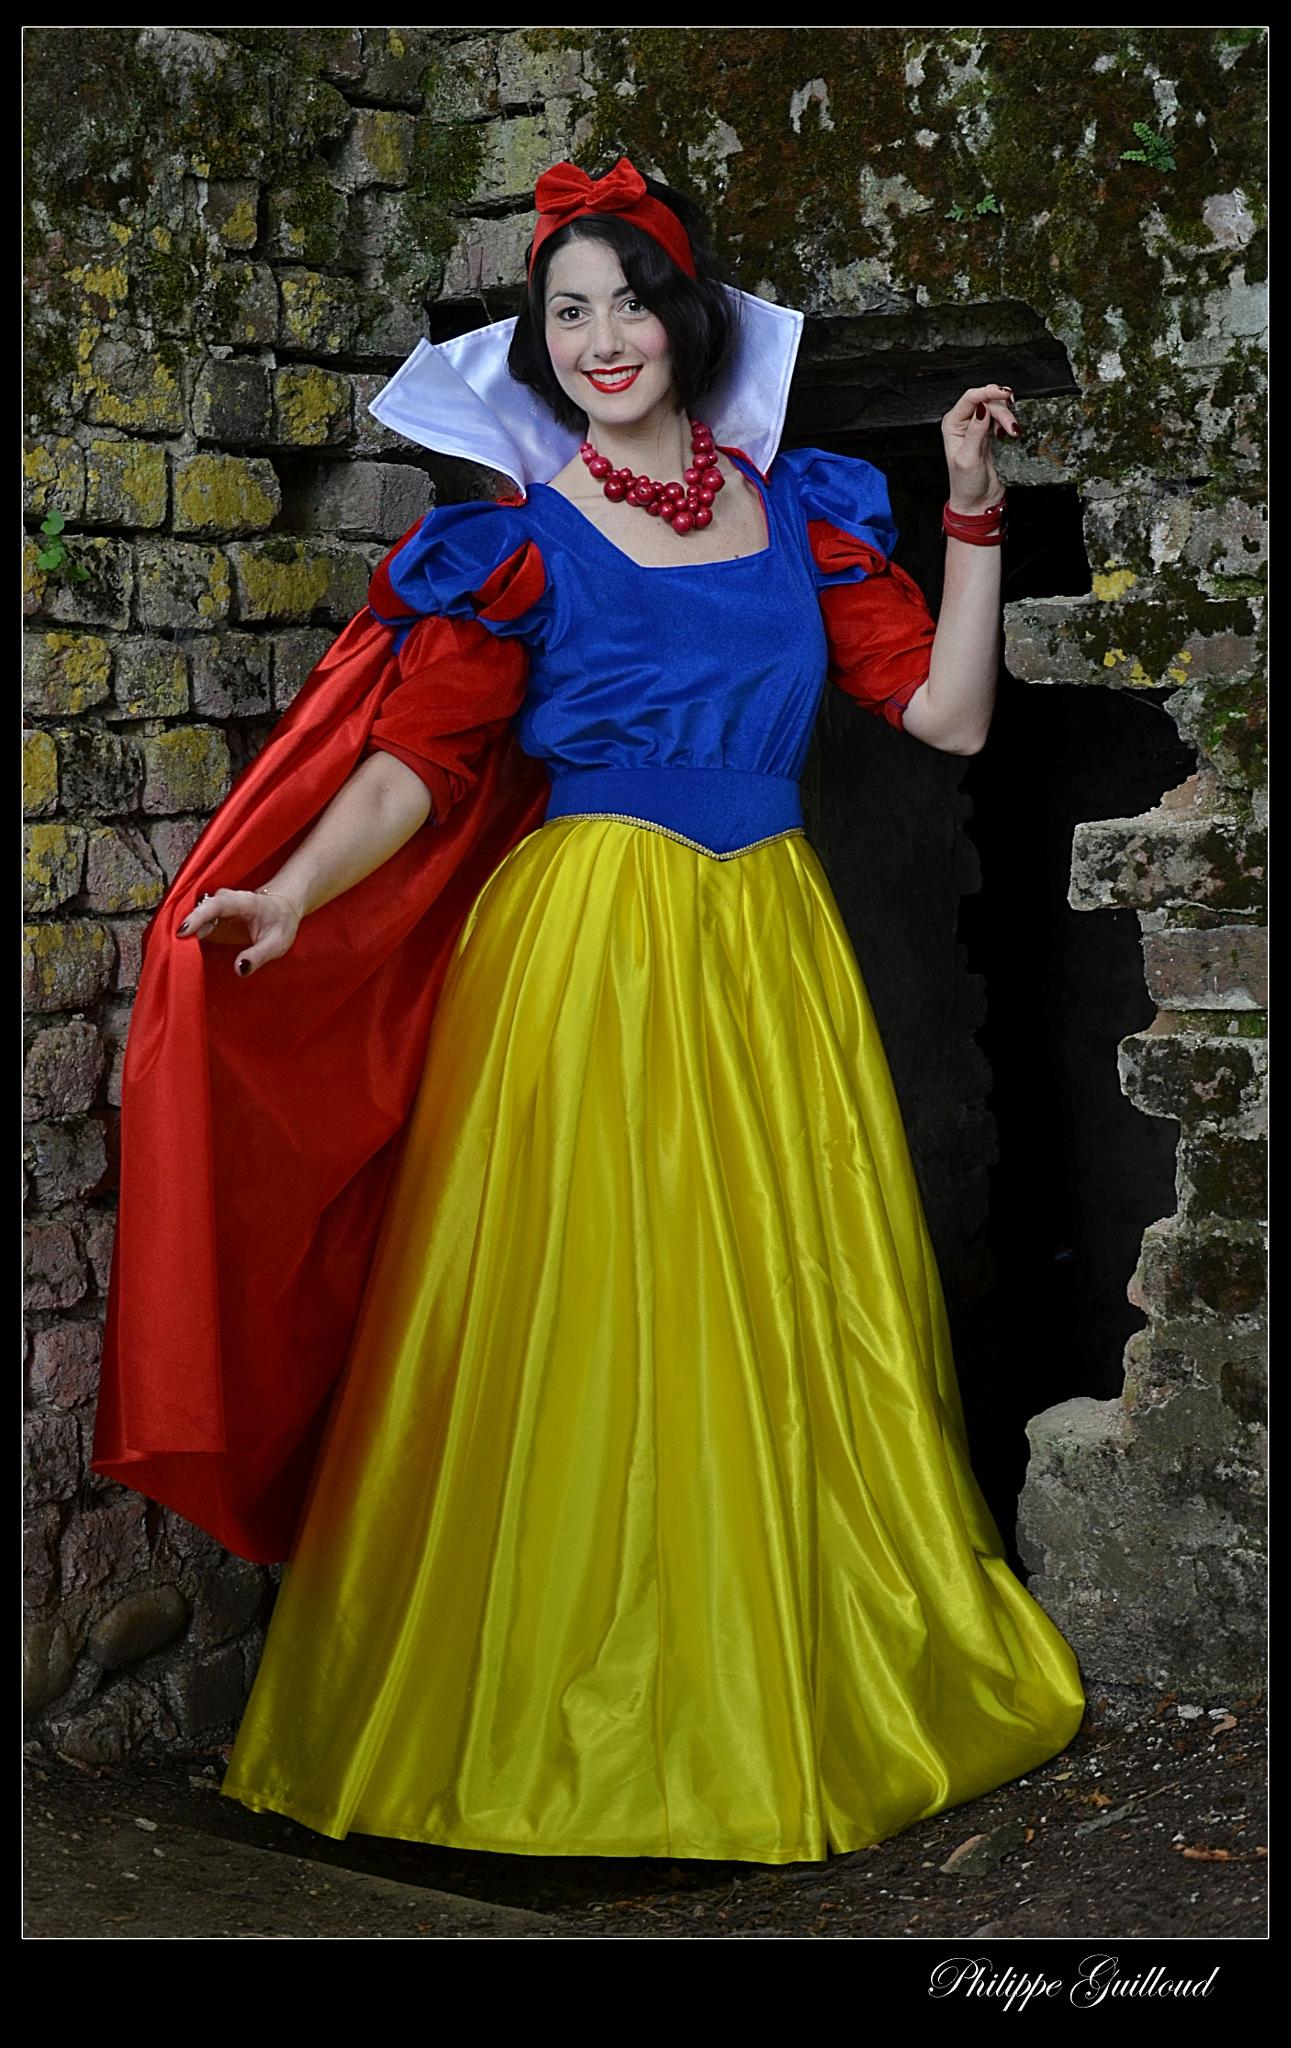 Blanche-Neige by Philippe Guilloud